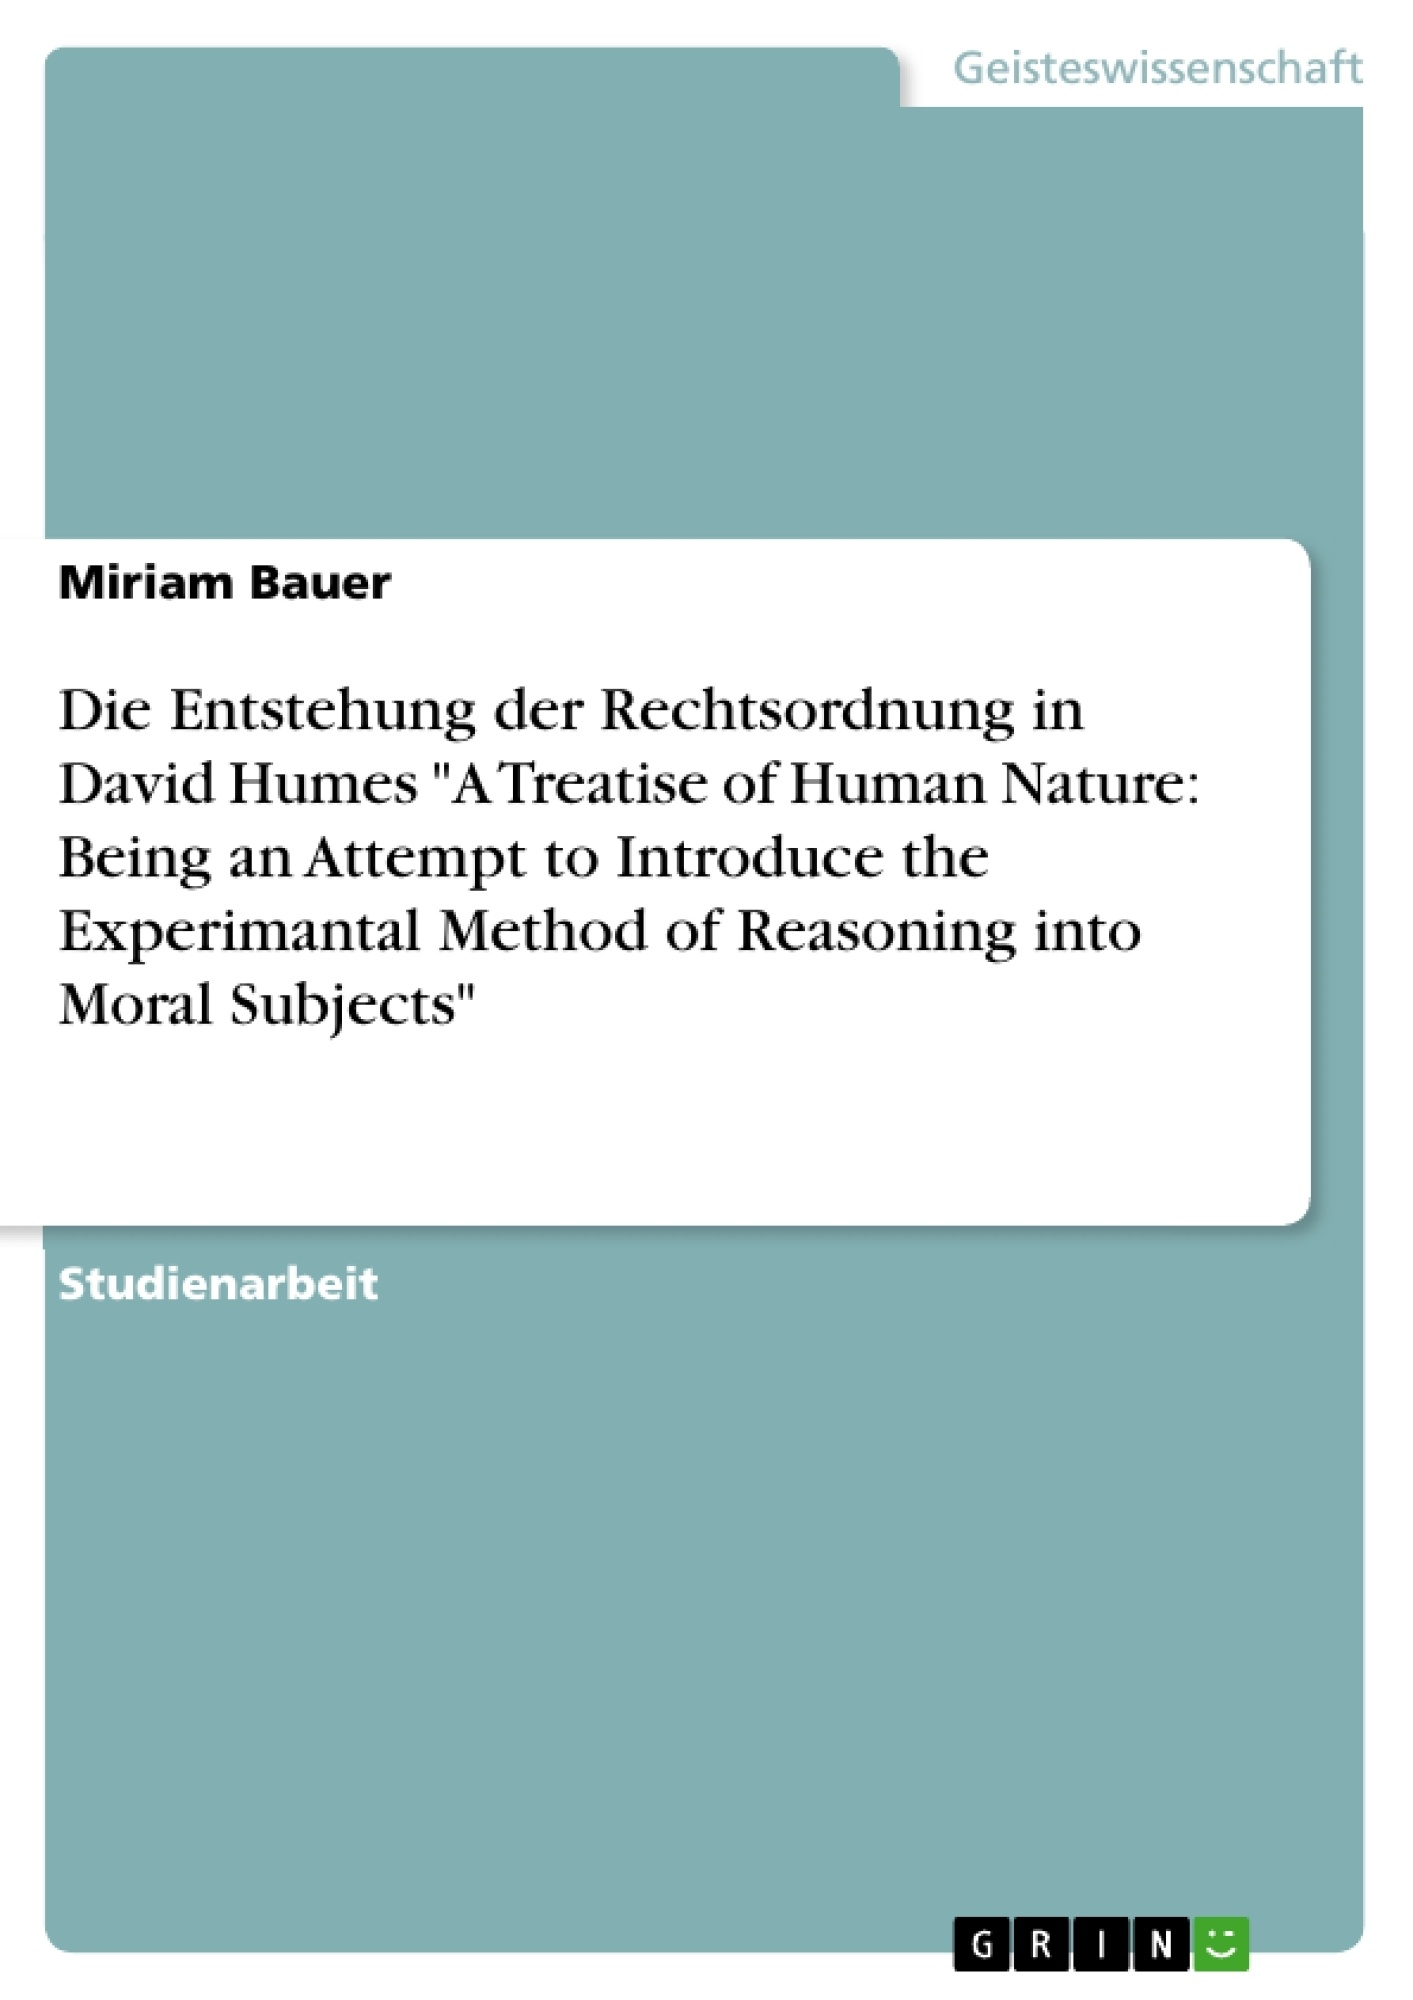 """Titel: Die Entstehung der Rechtsordnung in David Humes """"A Treatise of Human Nature: Being an Attempt to Introduce the Experimantal Method of Reasoning into Moral Subjects"""""""